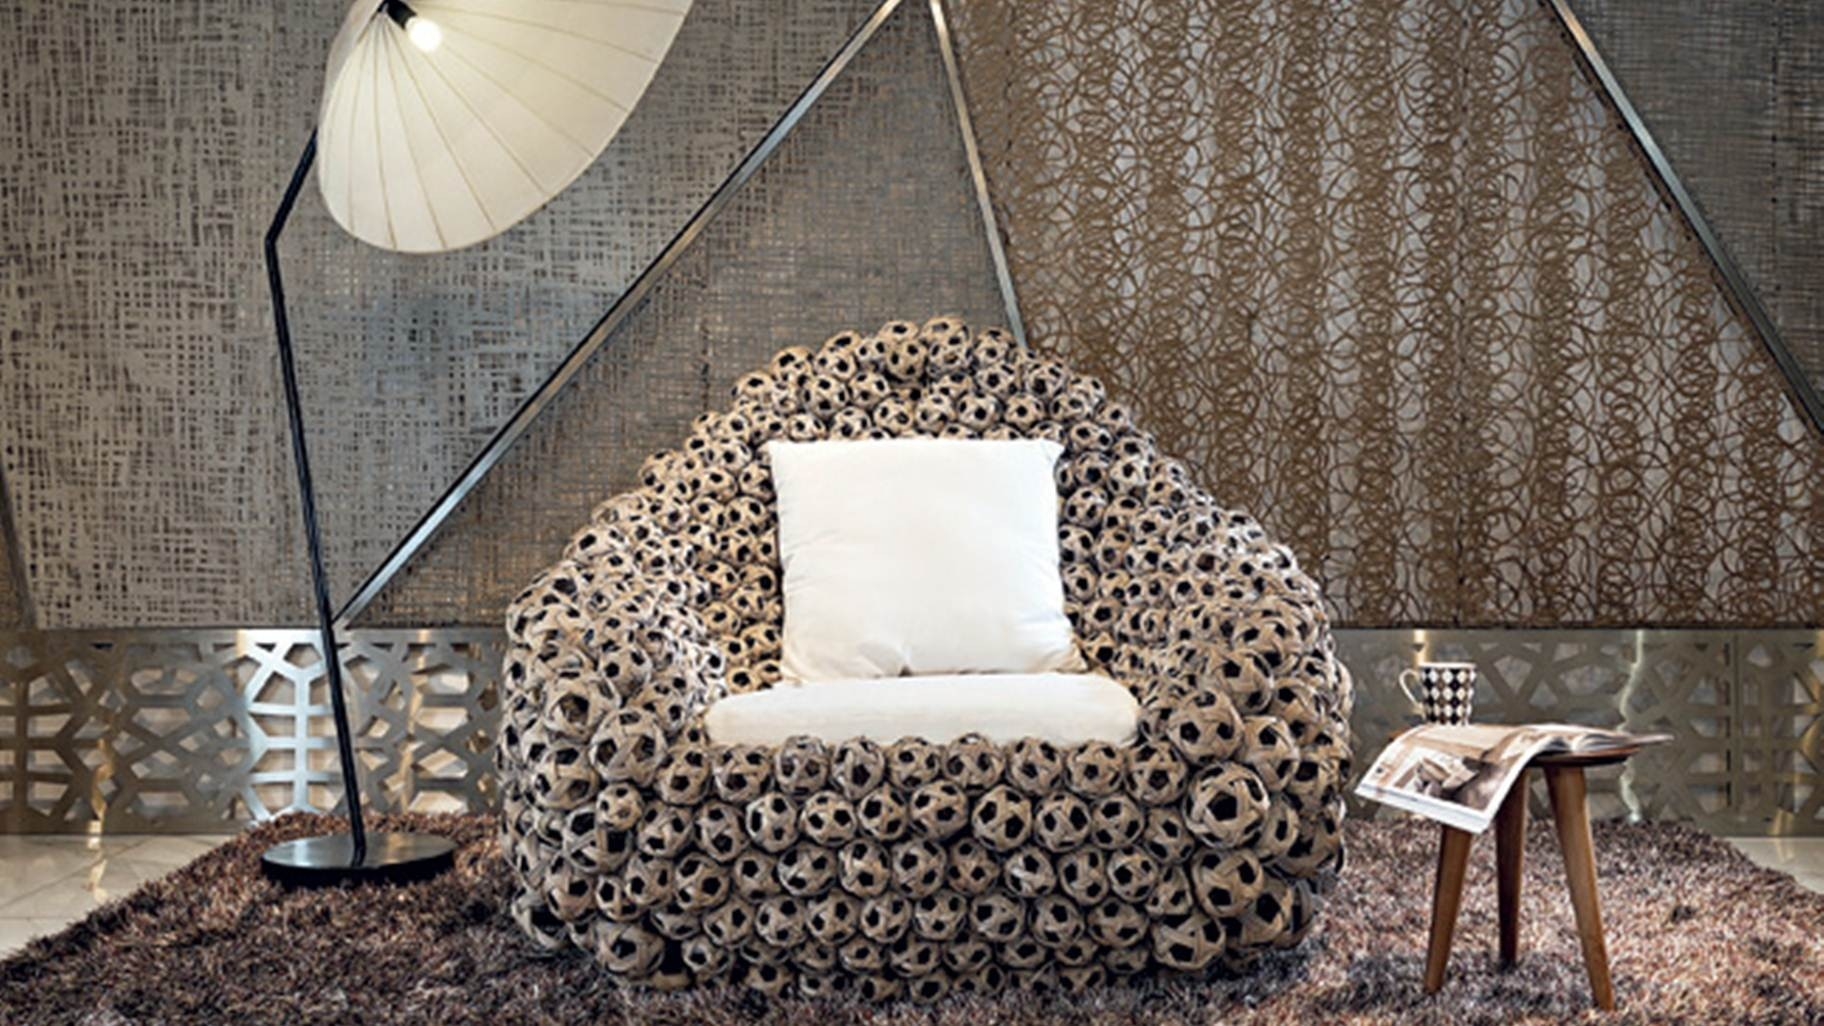 Make a statement with the Popcorn Chair from IOTA.